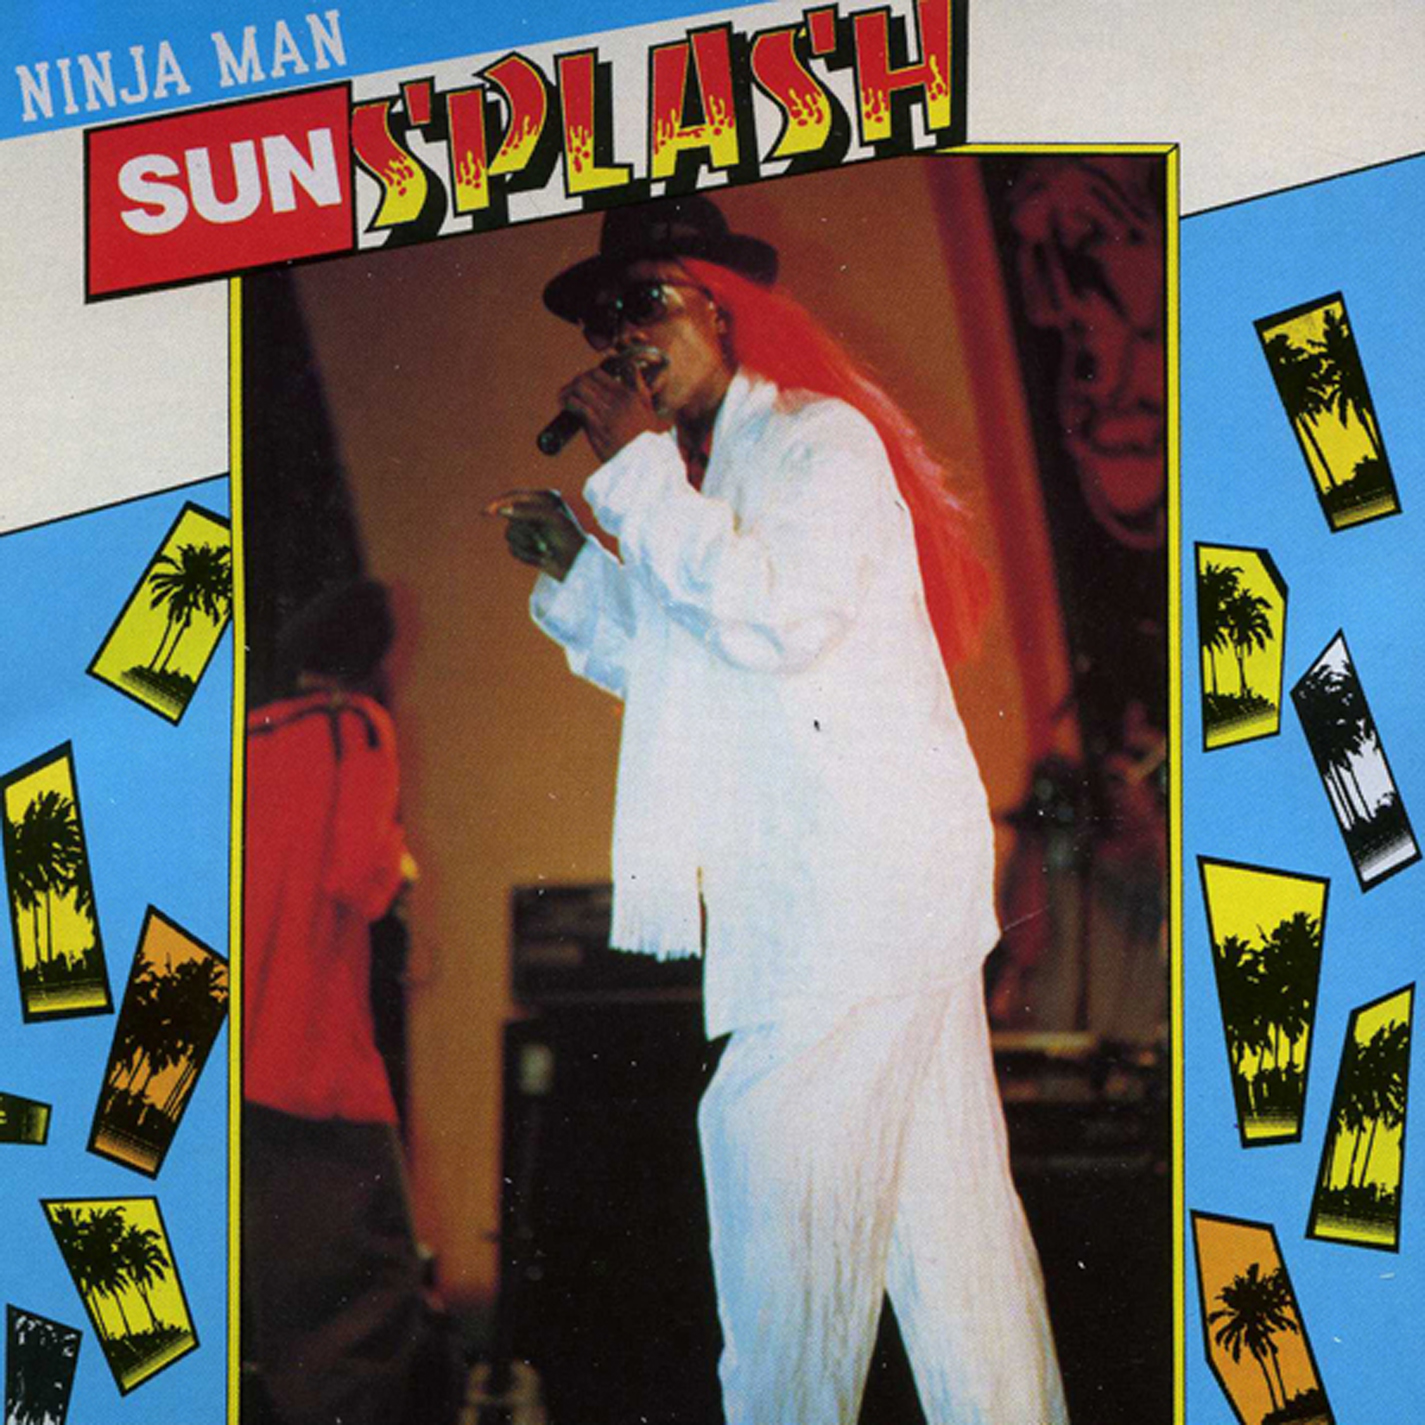 Ninja Man – Sunsplash